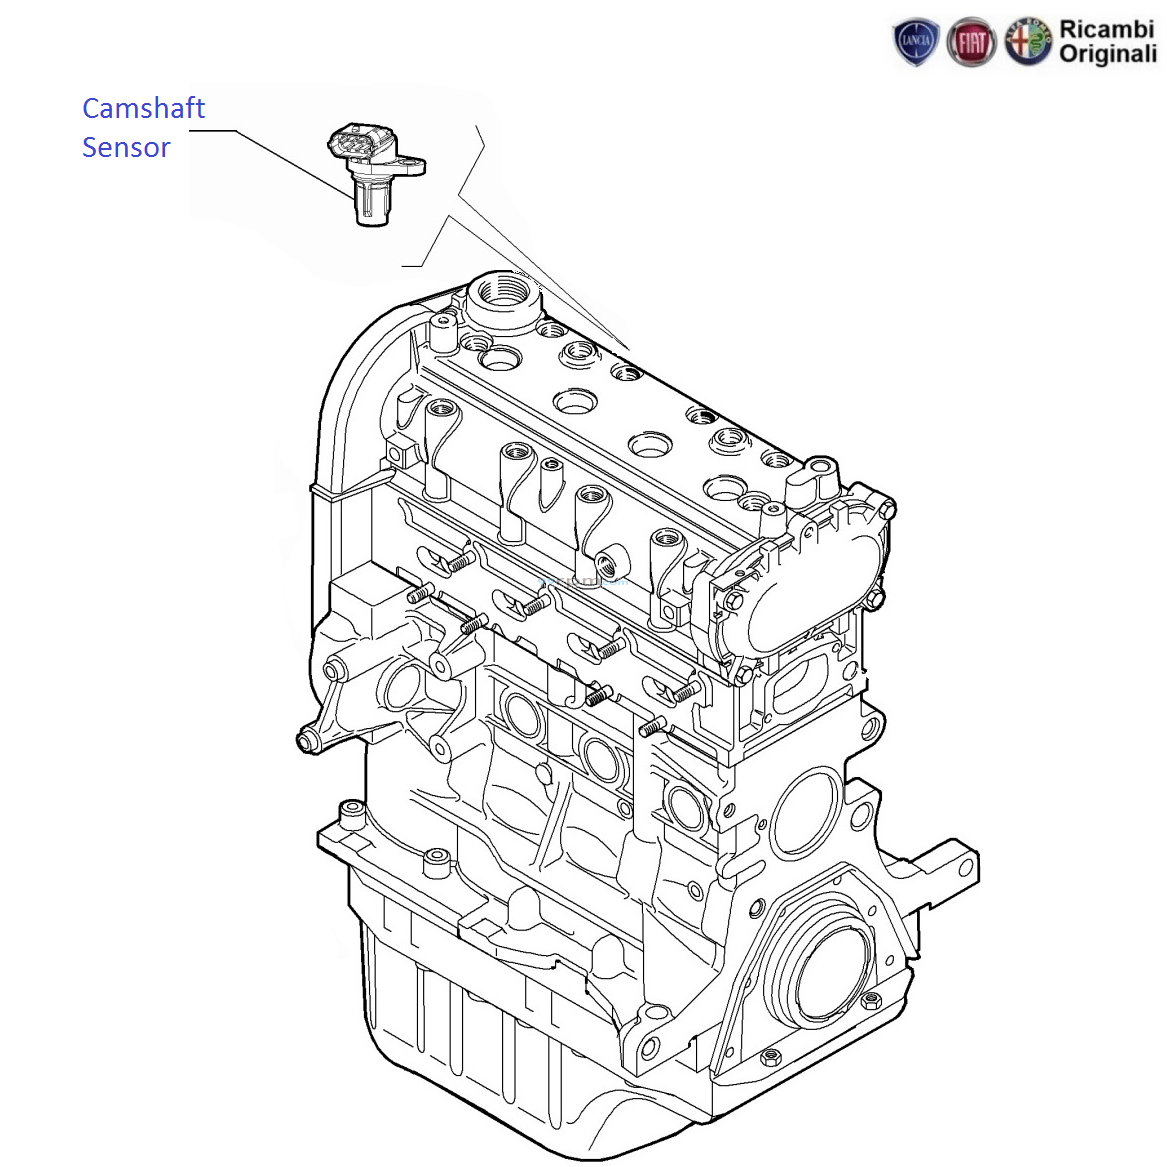 hight resolution of diagram camshaft sensor